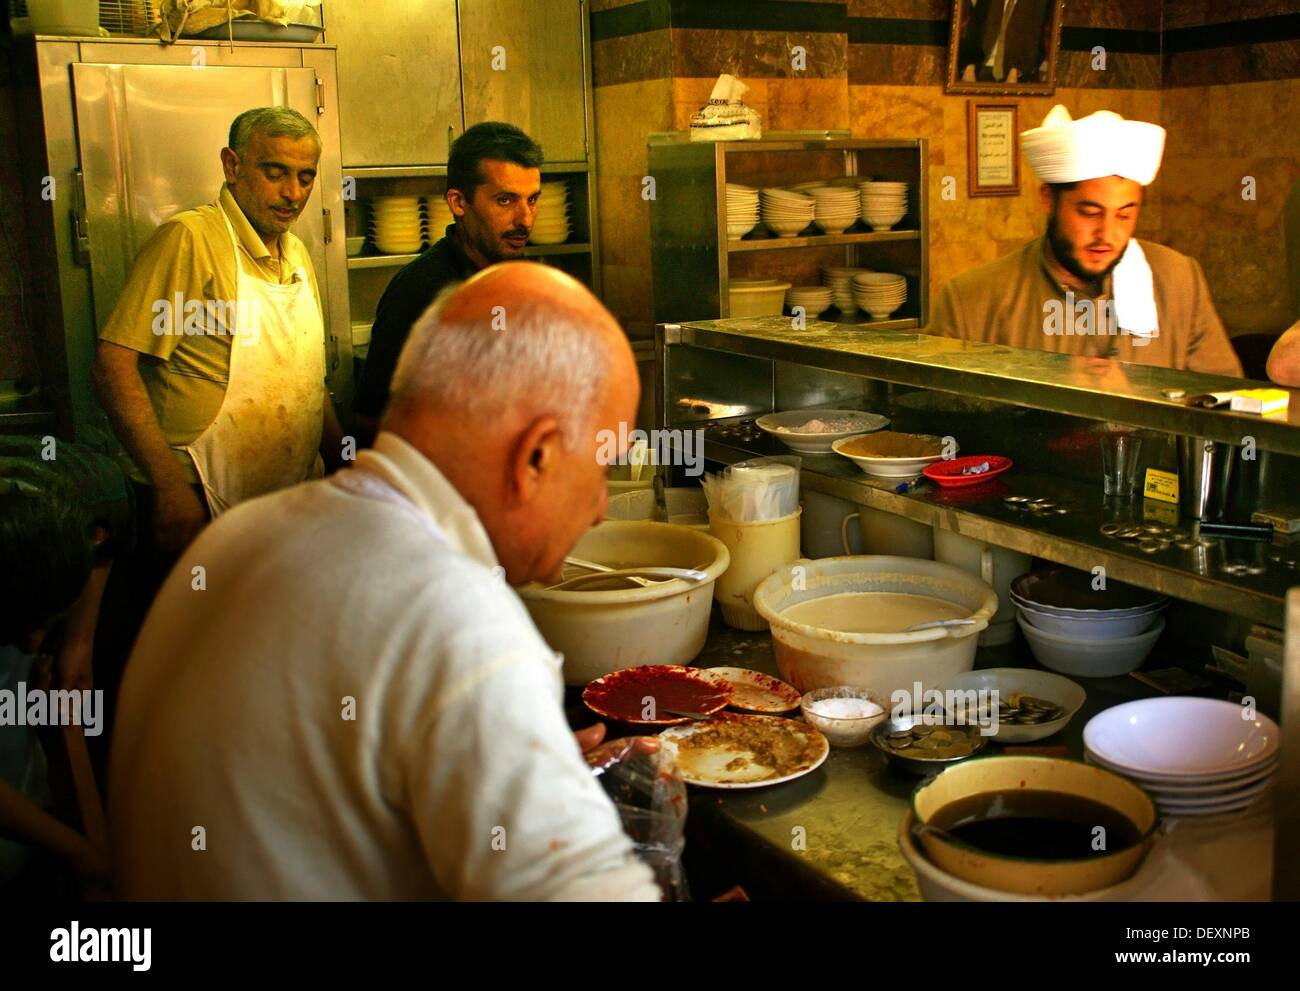 At the ´foul´ peak beans restaurant of Abou Abdou, in the Christian area of Jdeidé, Aleppo, Syria - Stock Image